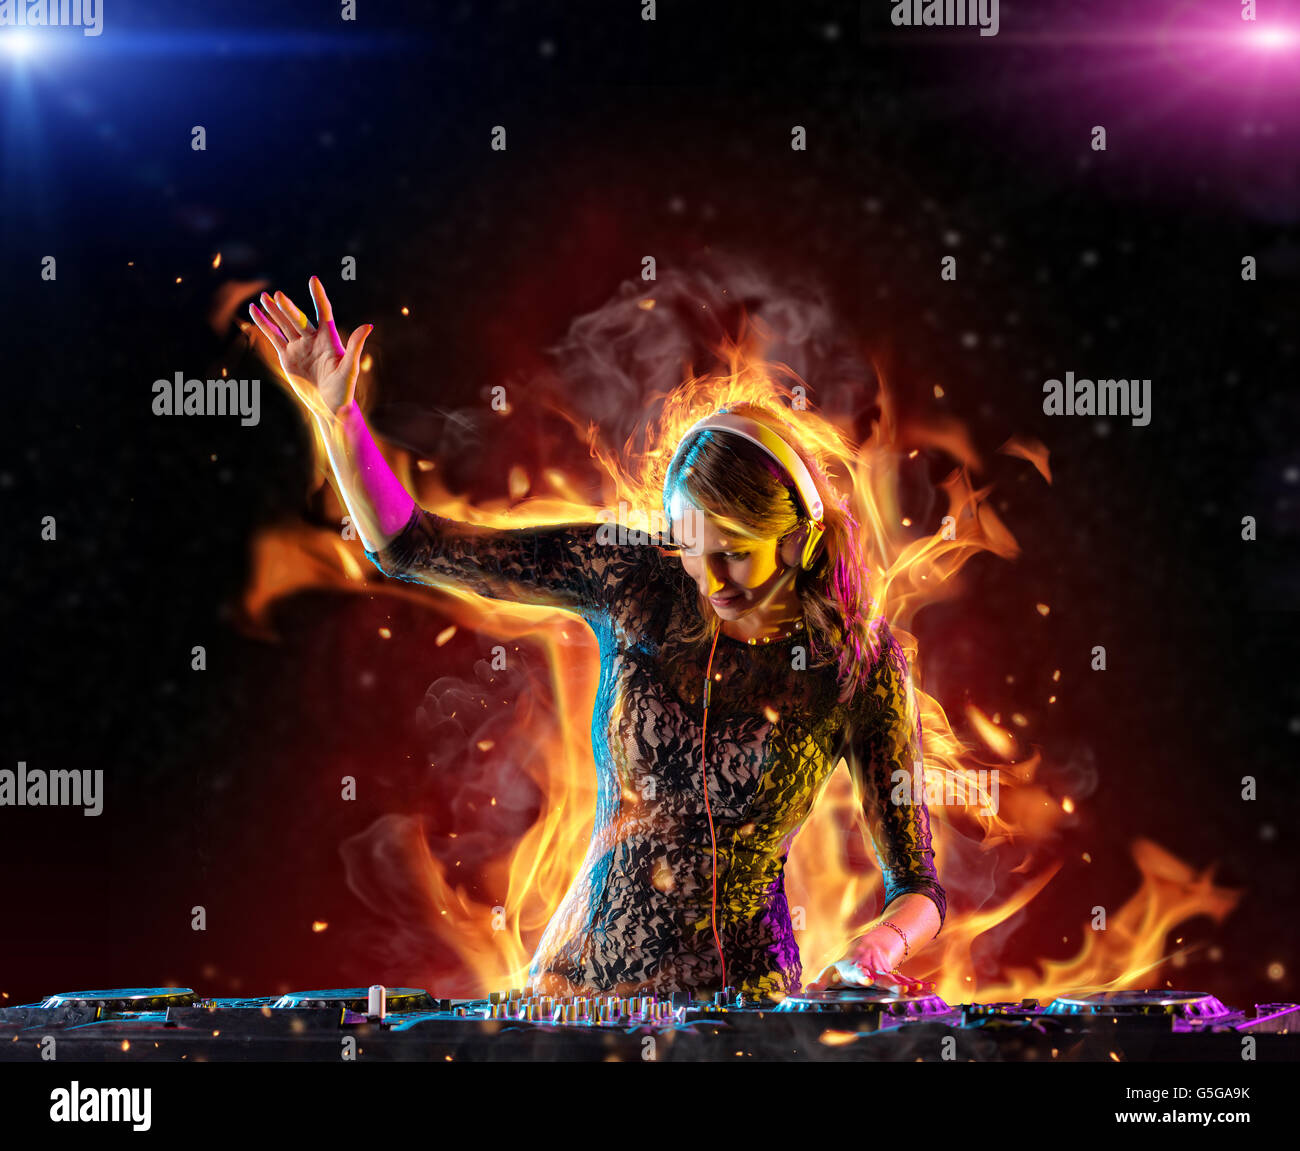 Disc jockey brunette girl mixing electronic music with fire flames around - Stock Image